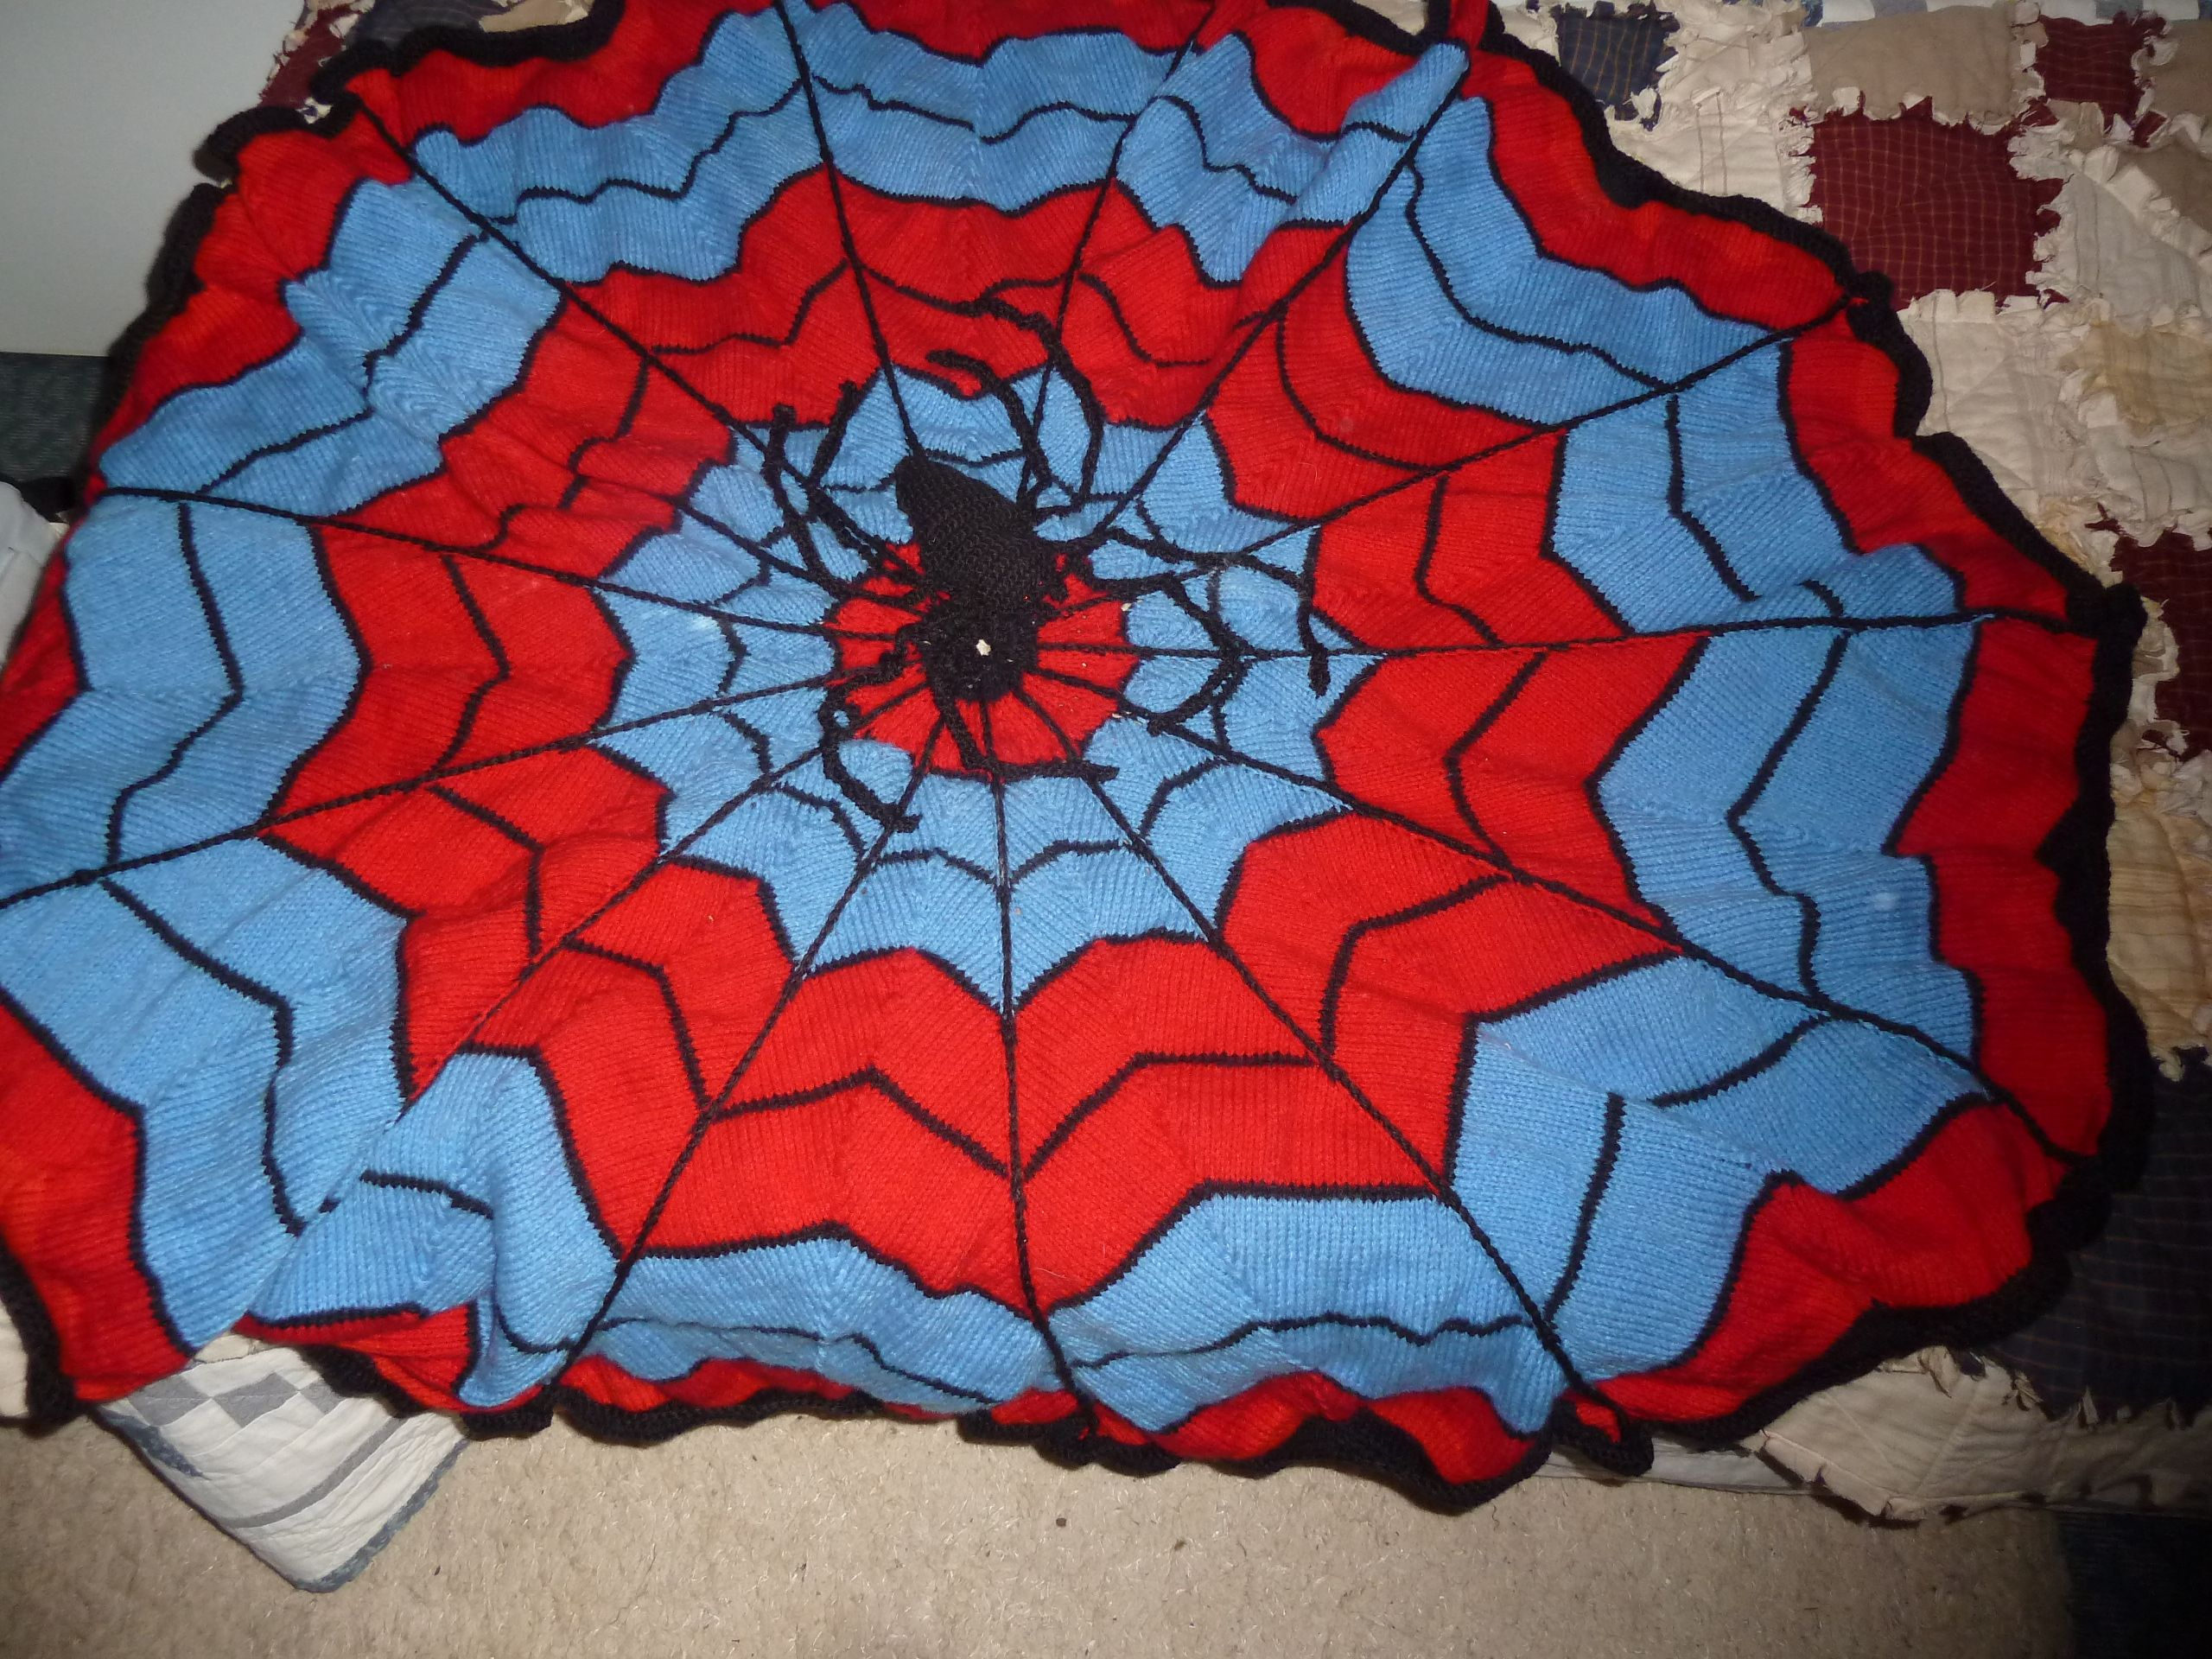 Spider web knitted blanket by teddybearmargaret ...